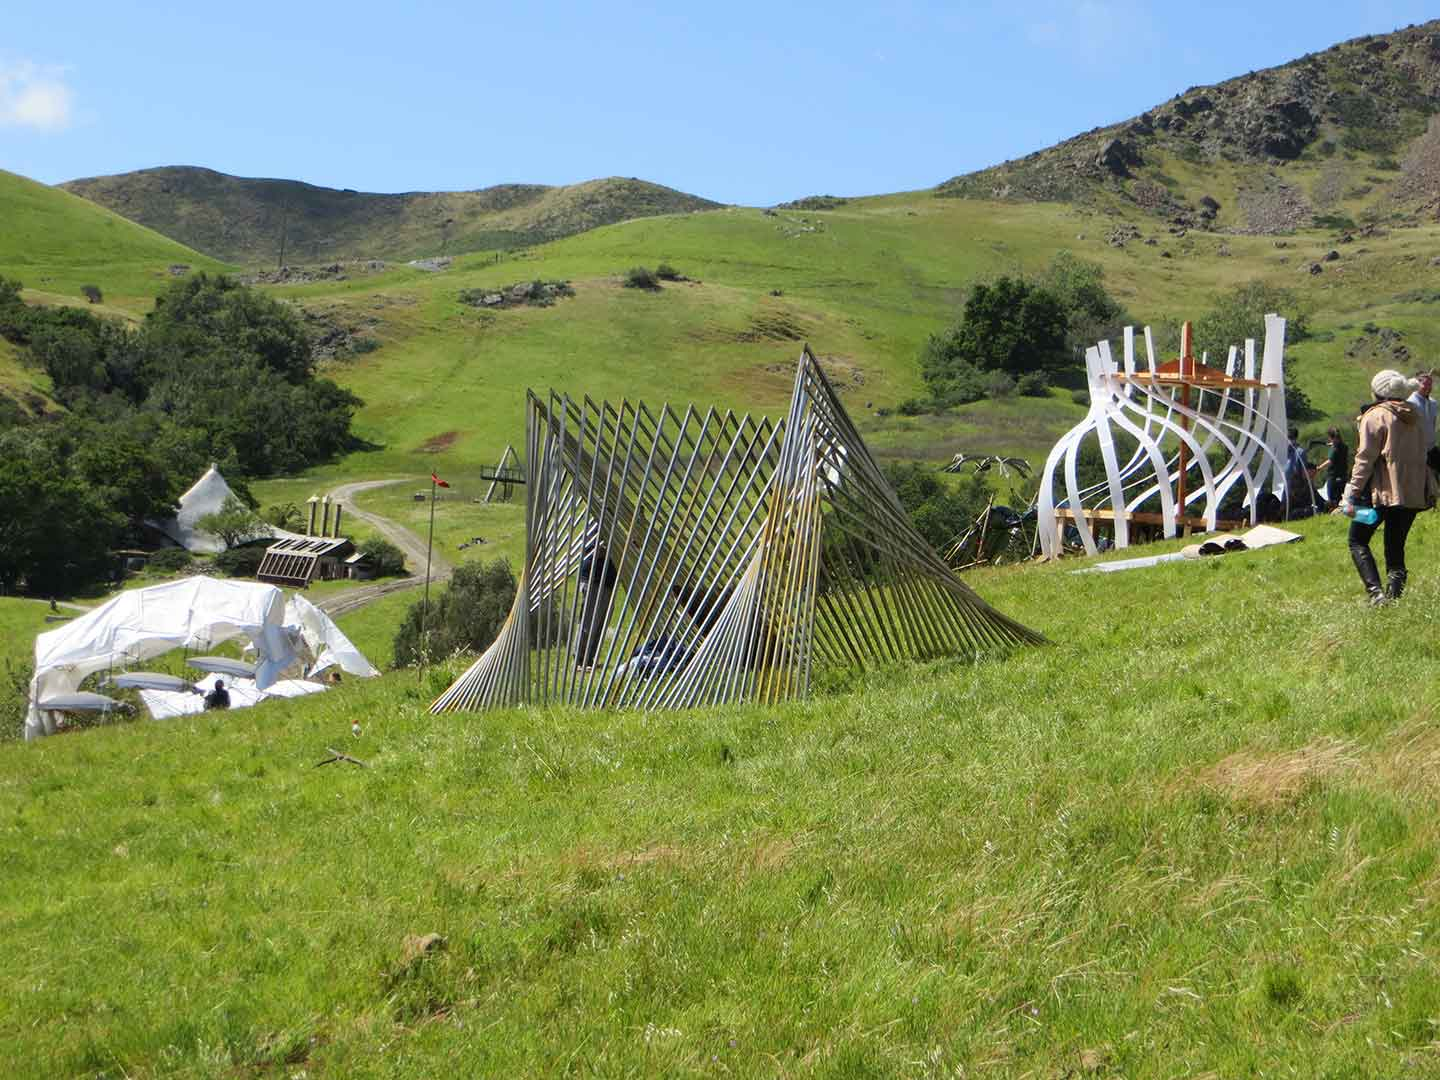 "Structures from a previous Design Village. College students from around the Golden State will travel to Cal Poly this weekend, April 26-28, to participate with Cal Poly students in the Design Village Competition. Students have designed structures to the theme ""Synthesis"" that they will build and inhabit in rural Poly Canyon, about a mile from the heart of campus."